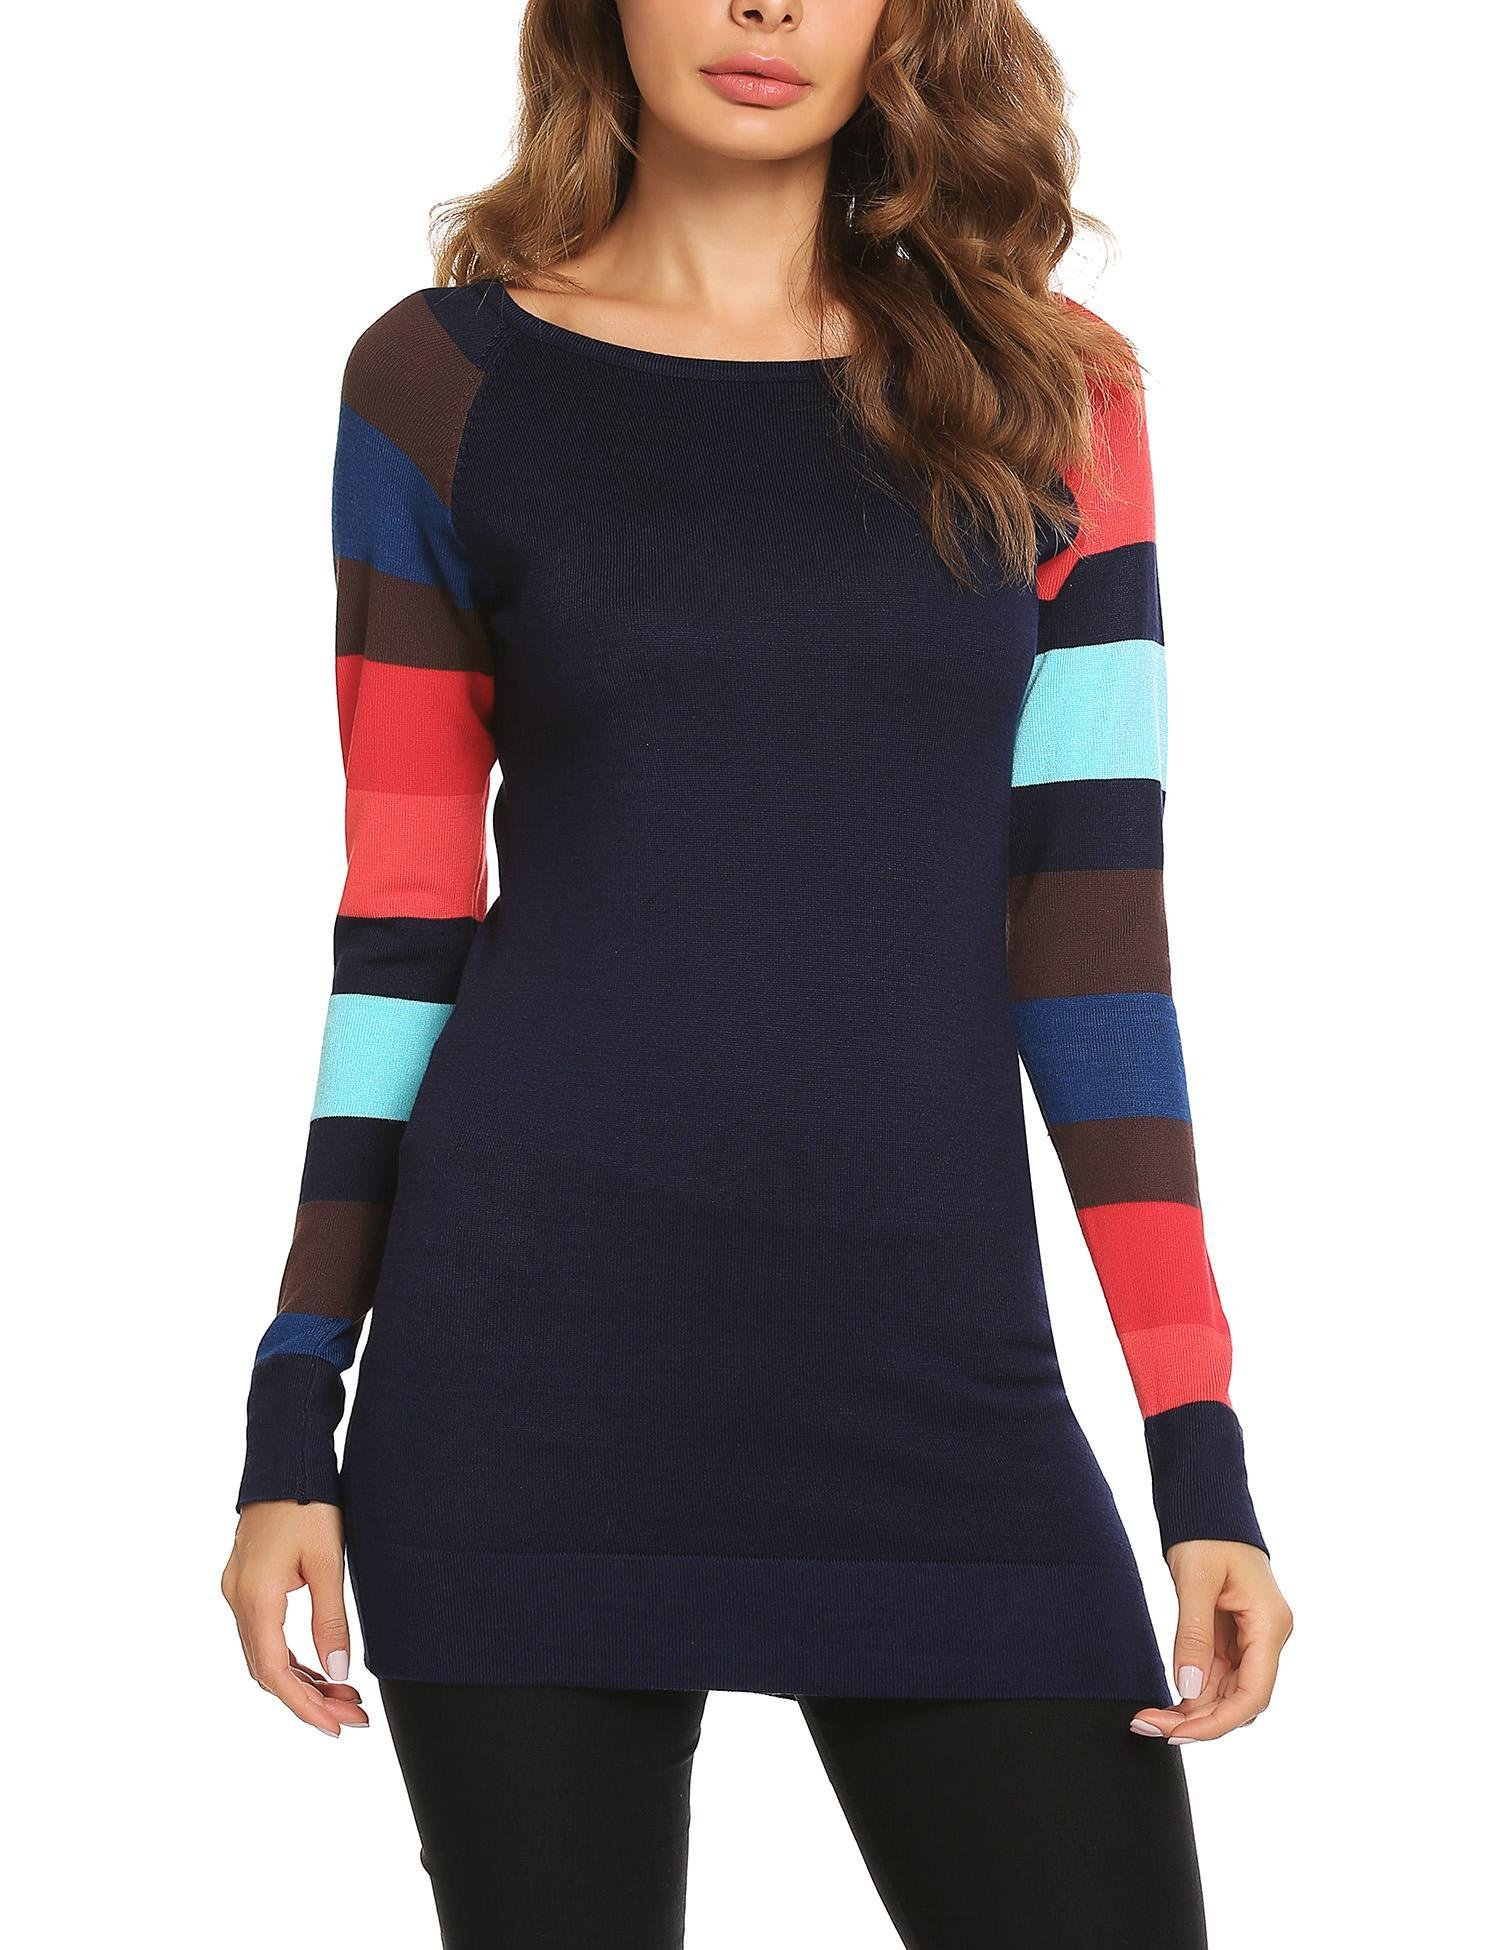 ELESOL Women Long Sleeve Crew Neck Colorful Striped Tunic Sweater Navy blue S